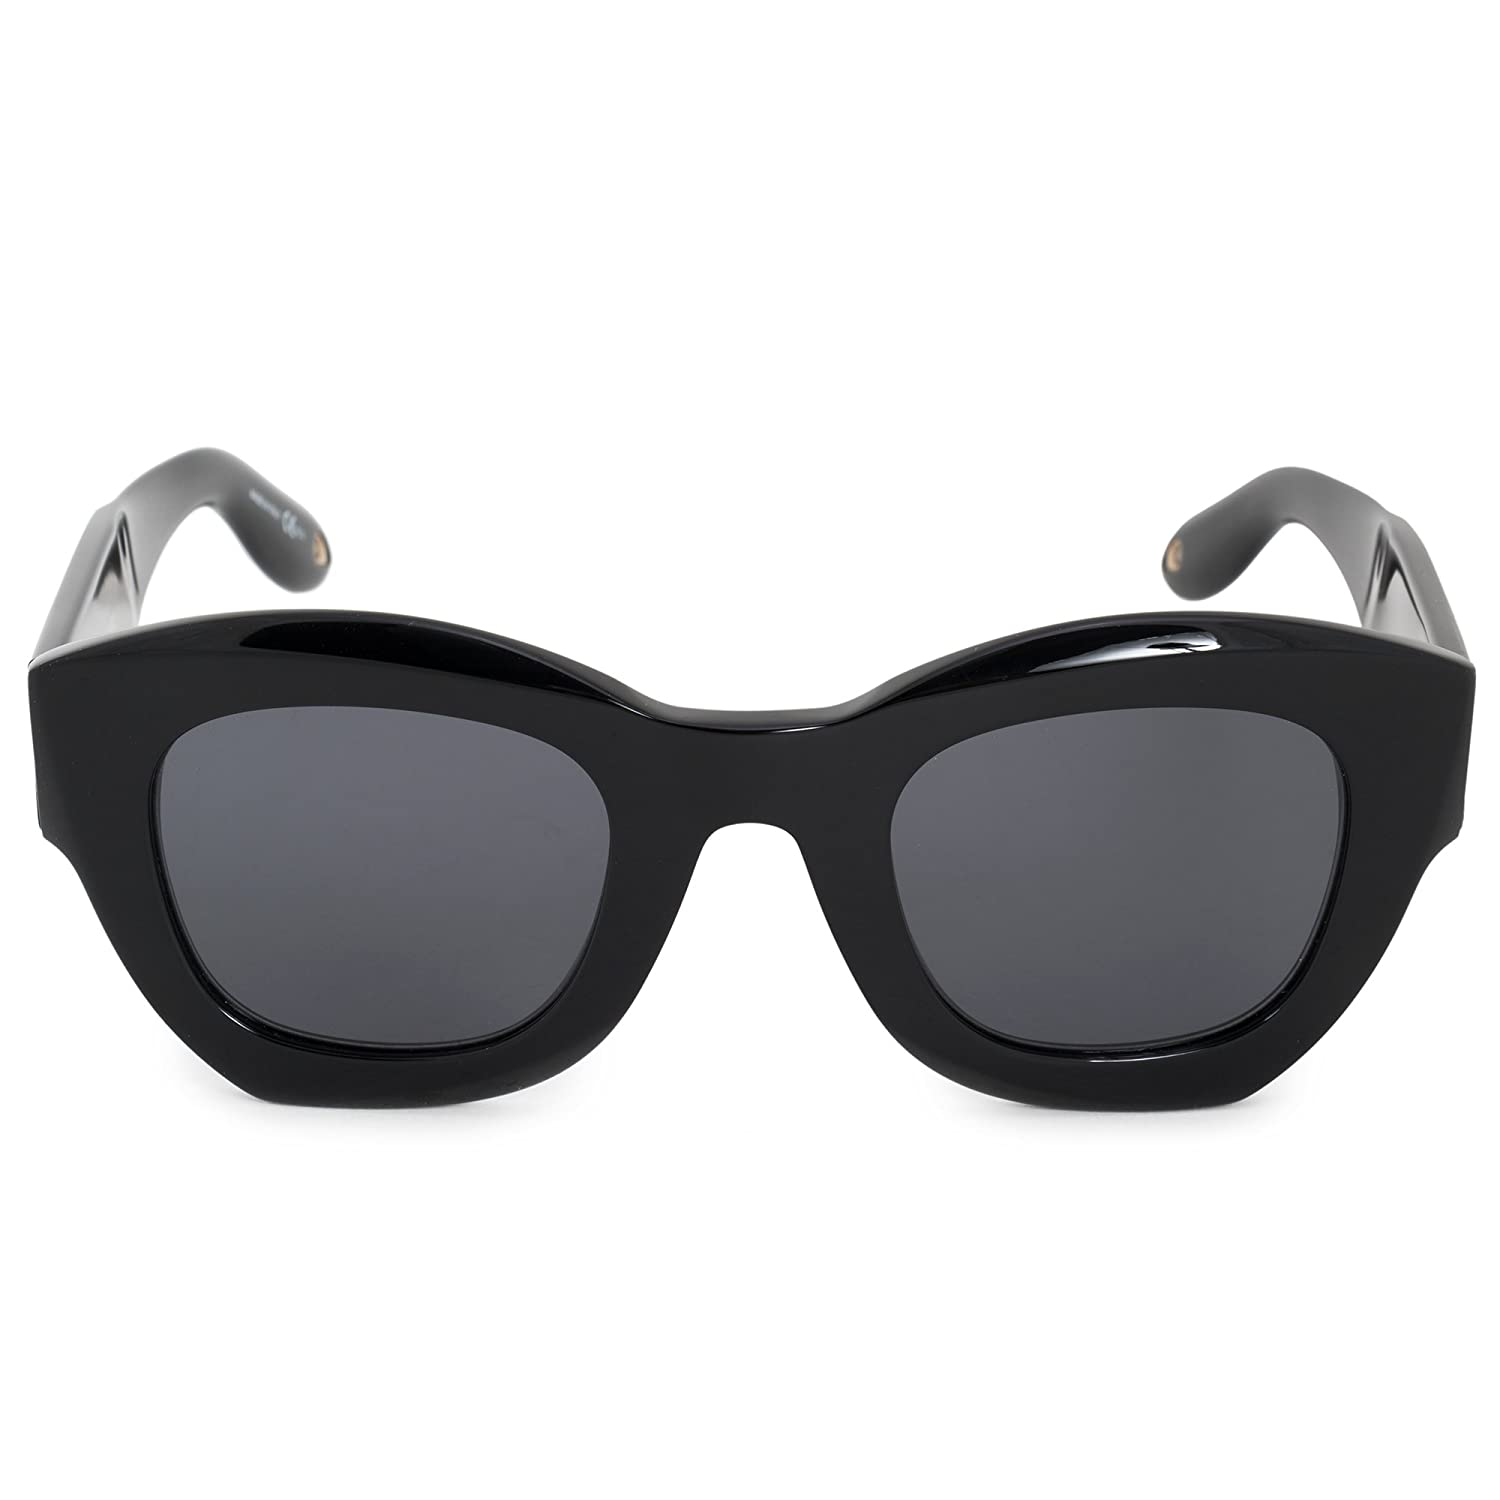 c888bff3d77d Amazon.com: Givenchy GV7060/S 807 Black GV7060/S Square Sunglasses Lens  Category 3 Size 48m: Givenchy: Clothing